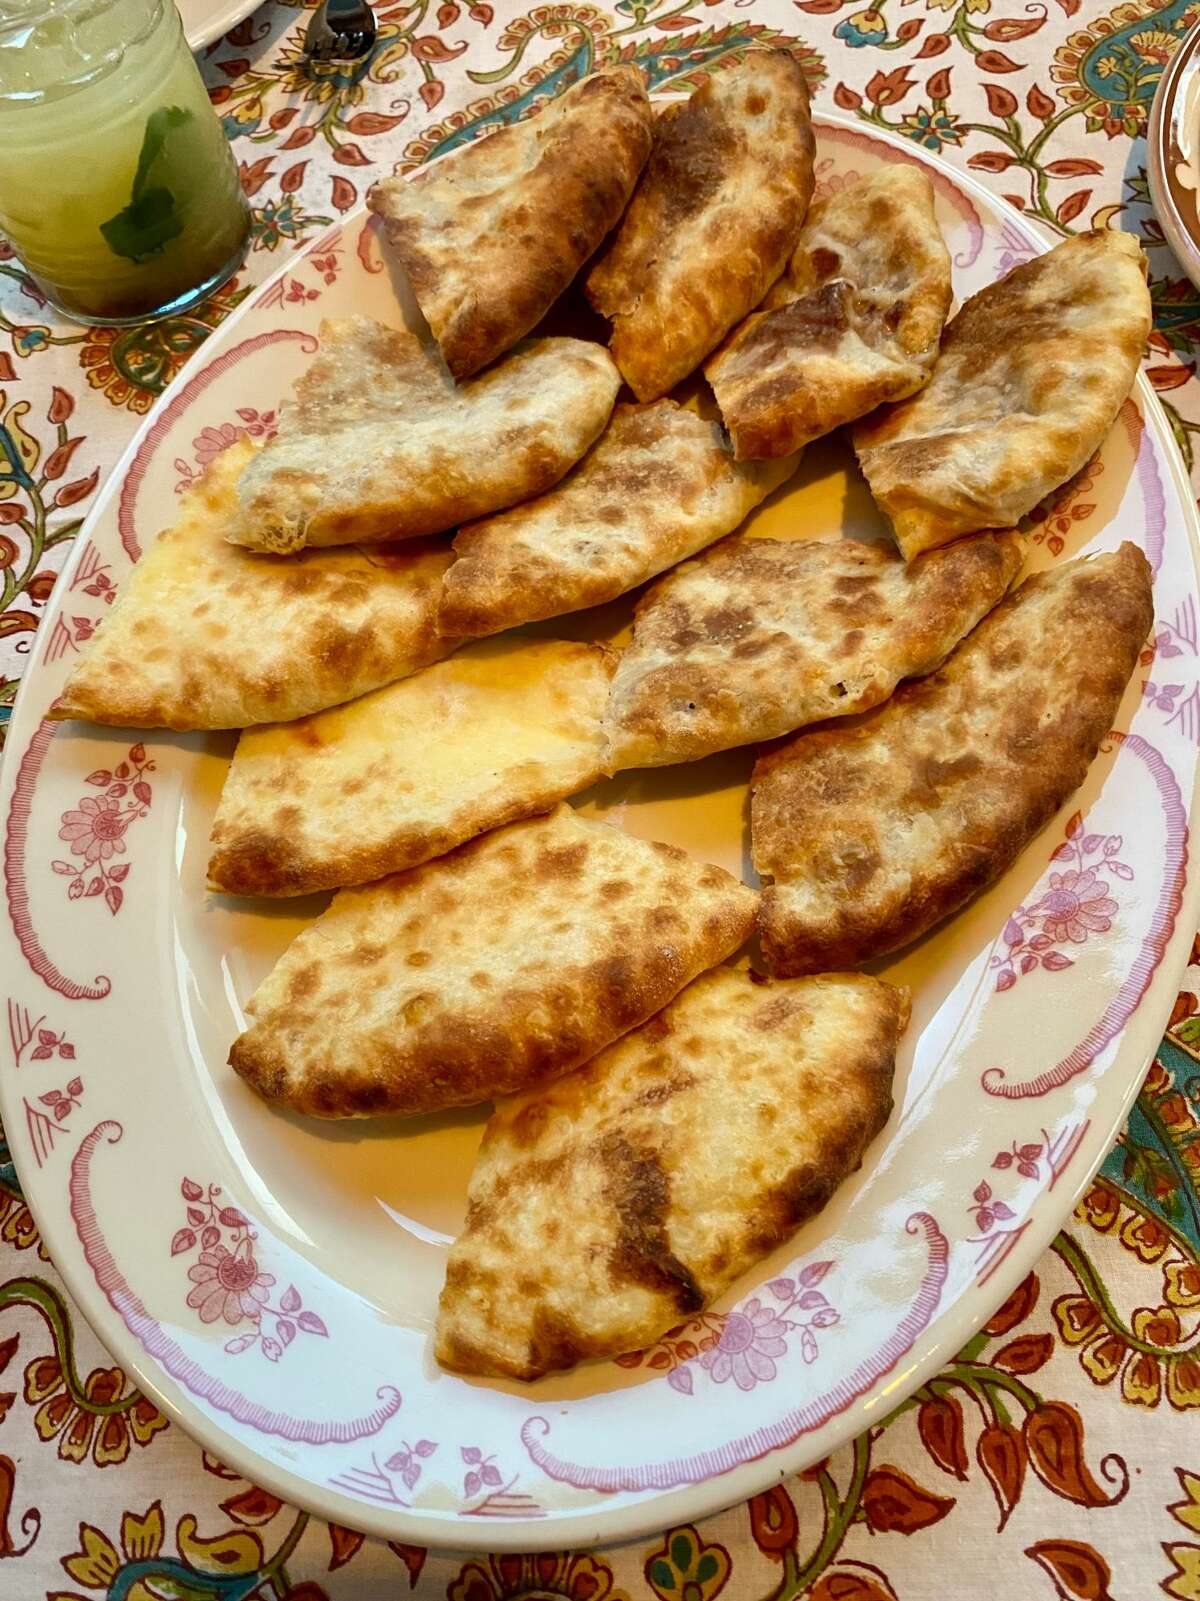 Assorted khachapuri, a stuffed bread, at Chama Mama. Three regional versions are offered at the pop-up from a New York City restaurant of the same name now open at Mass MoCA. (In Georgia there are 47).